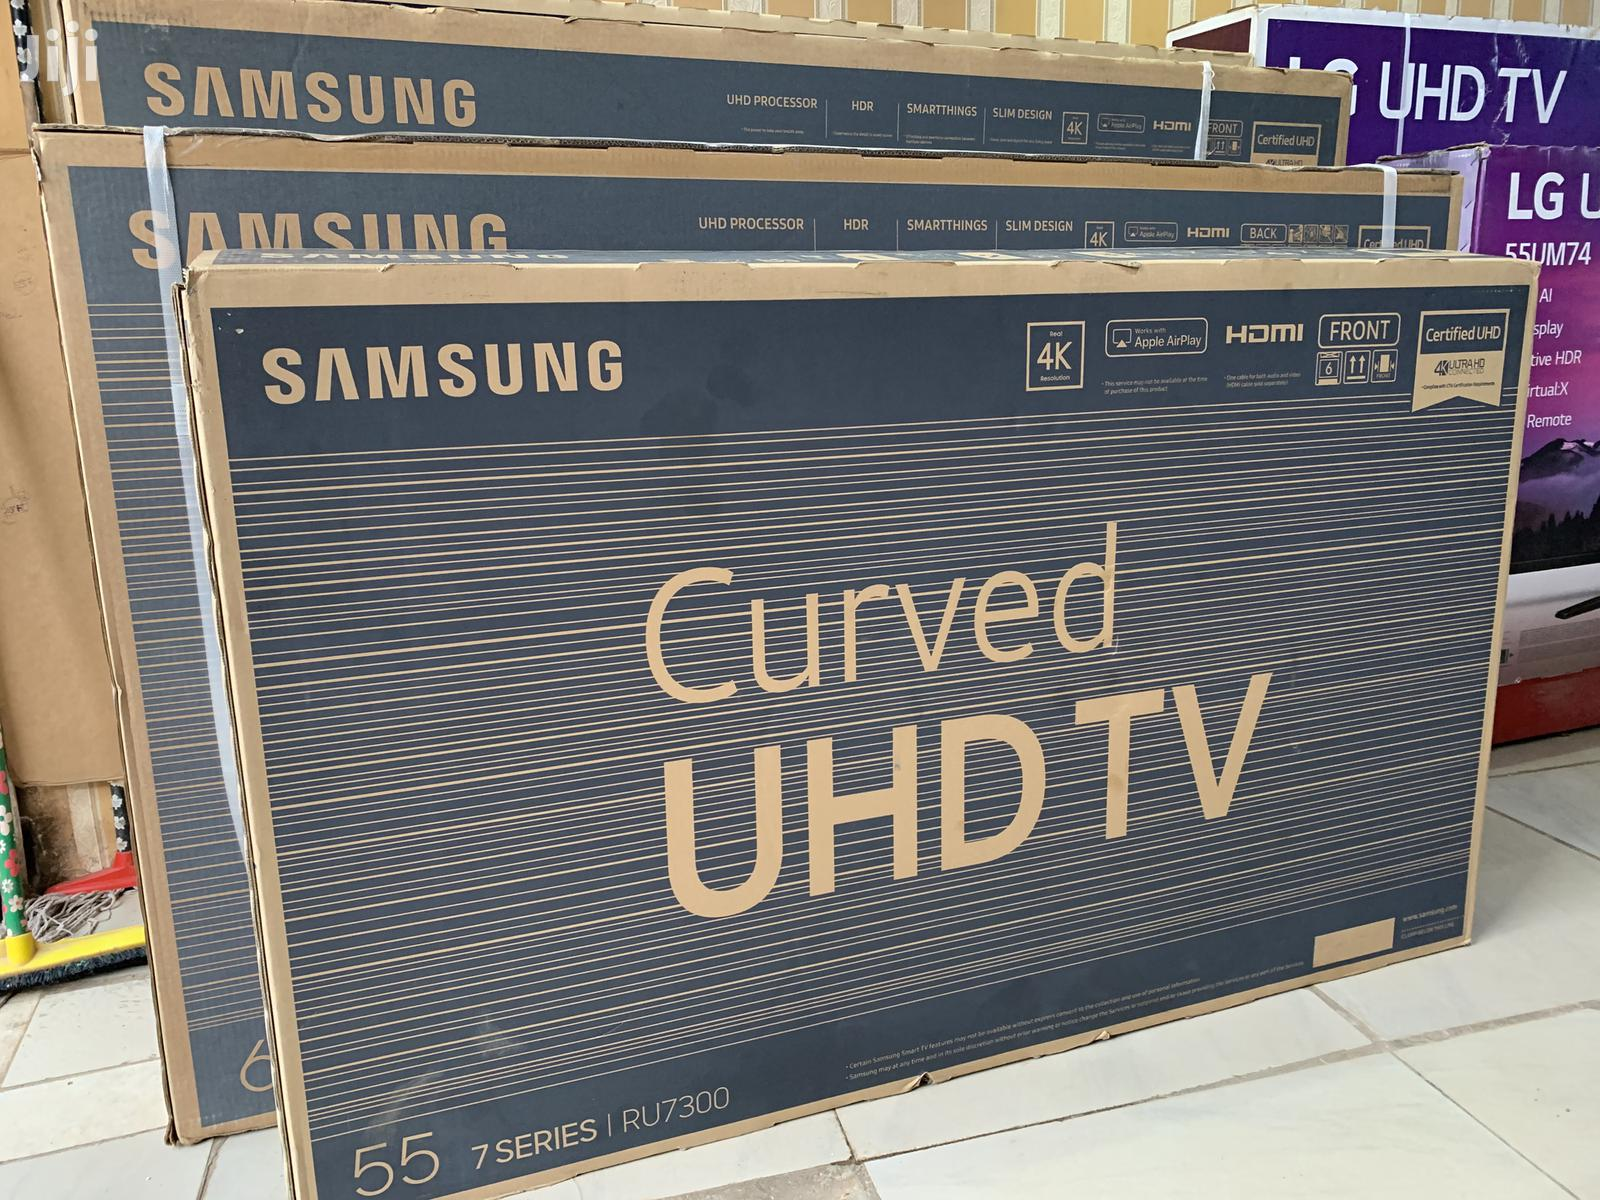 Samsung Curved Uhd 4k TV 55 Inches